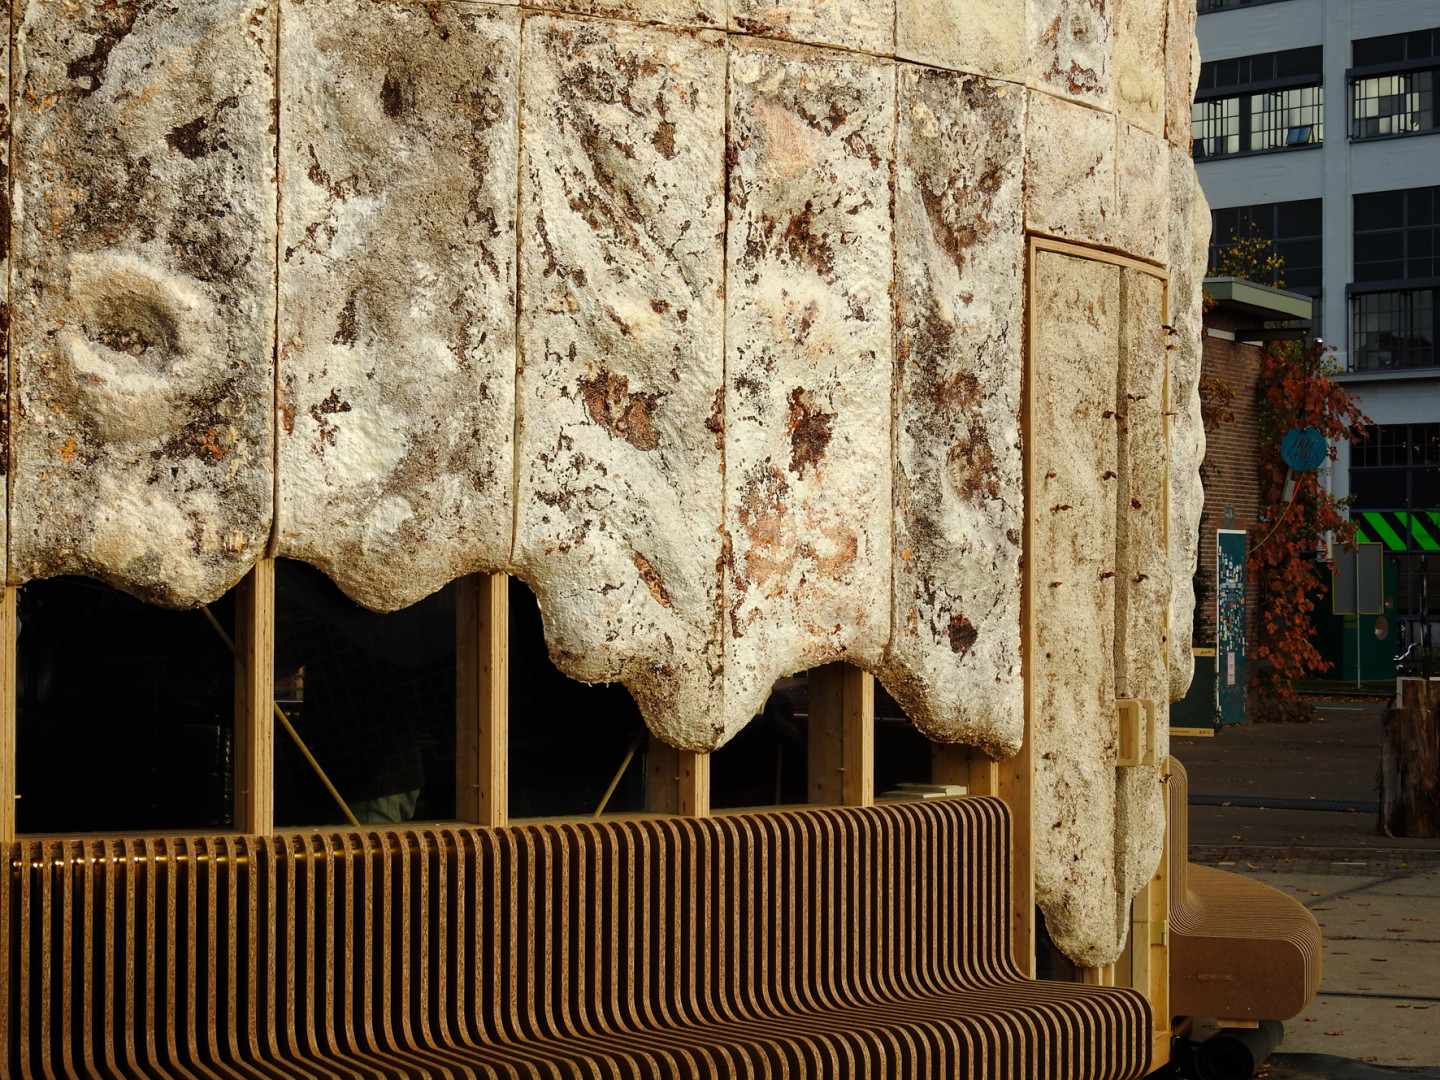 Facade of The Growing Pavilion is covered with mycelium panels designed by Krown.bio. The benches are made of rice straw ECO-Boards by Fiction Factory © Photos Eric Meander